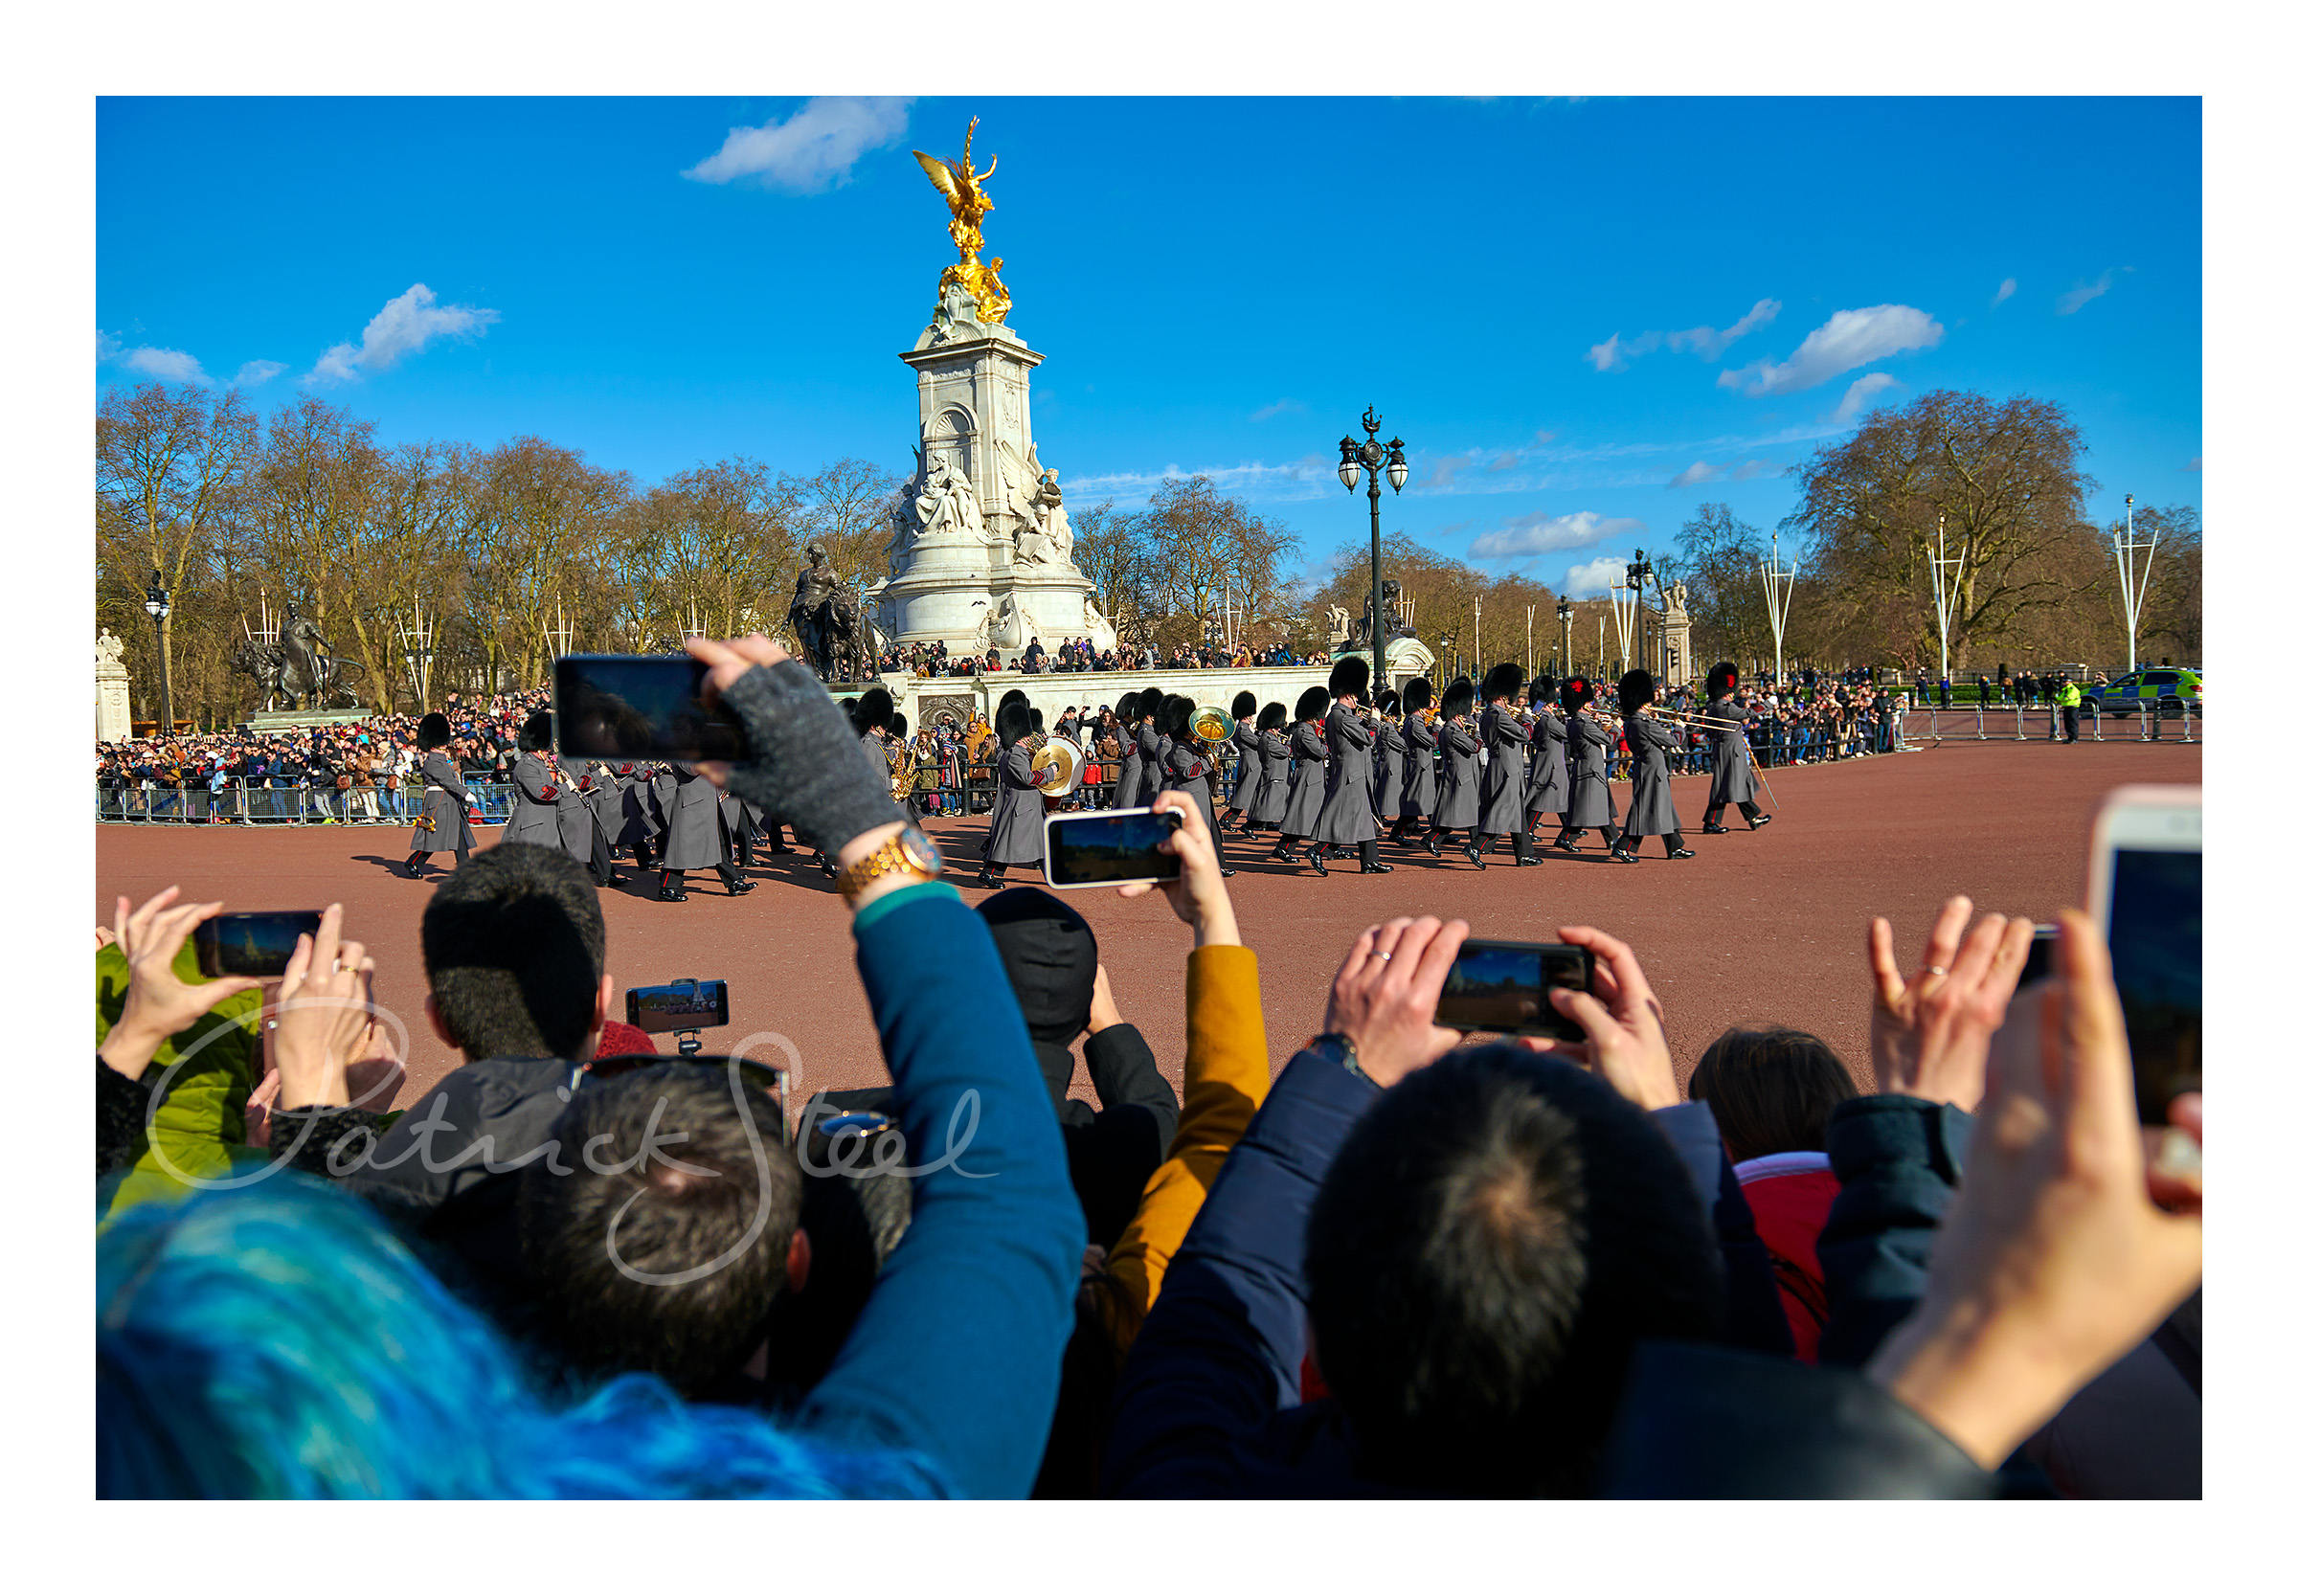 Title: Band of the Coldstream Guards, Victoria Memorial, London | Details coming soon...